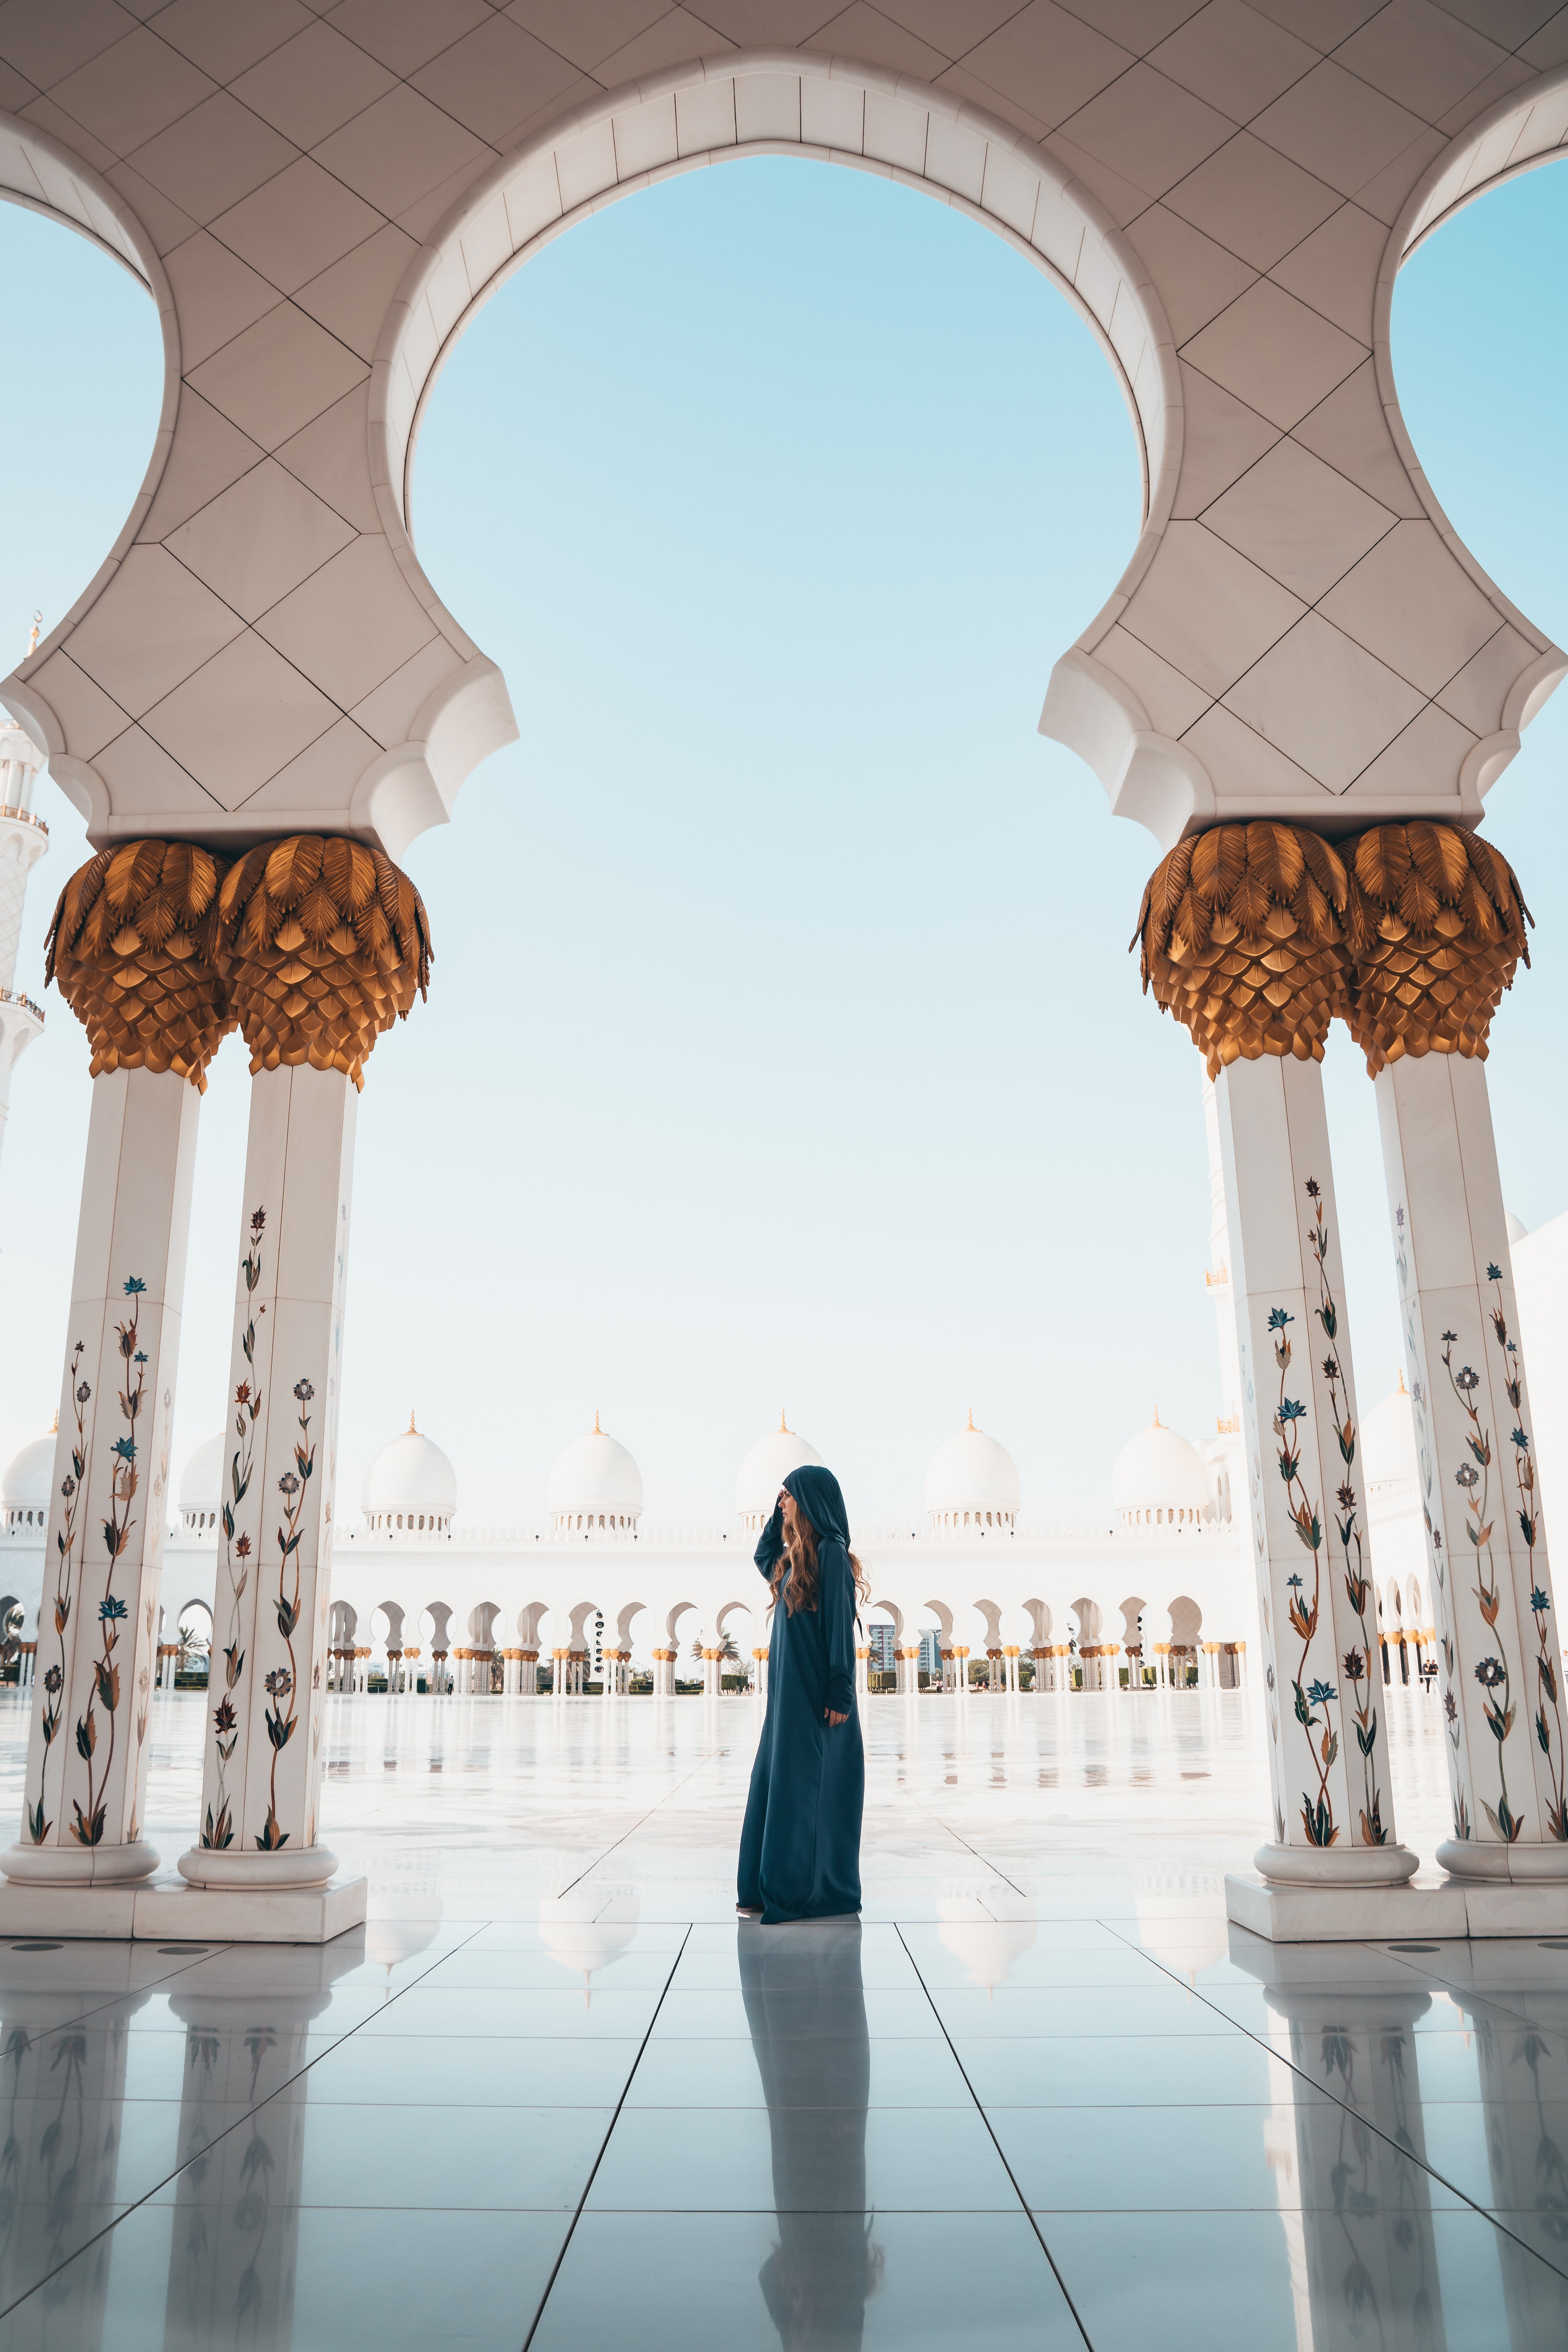 woman standing on white tiled floor in the middle of concrete pillars